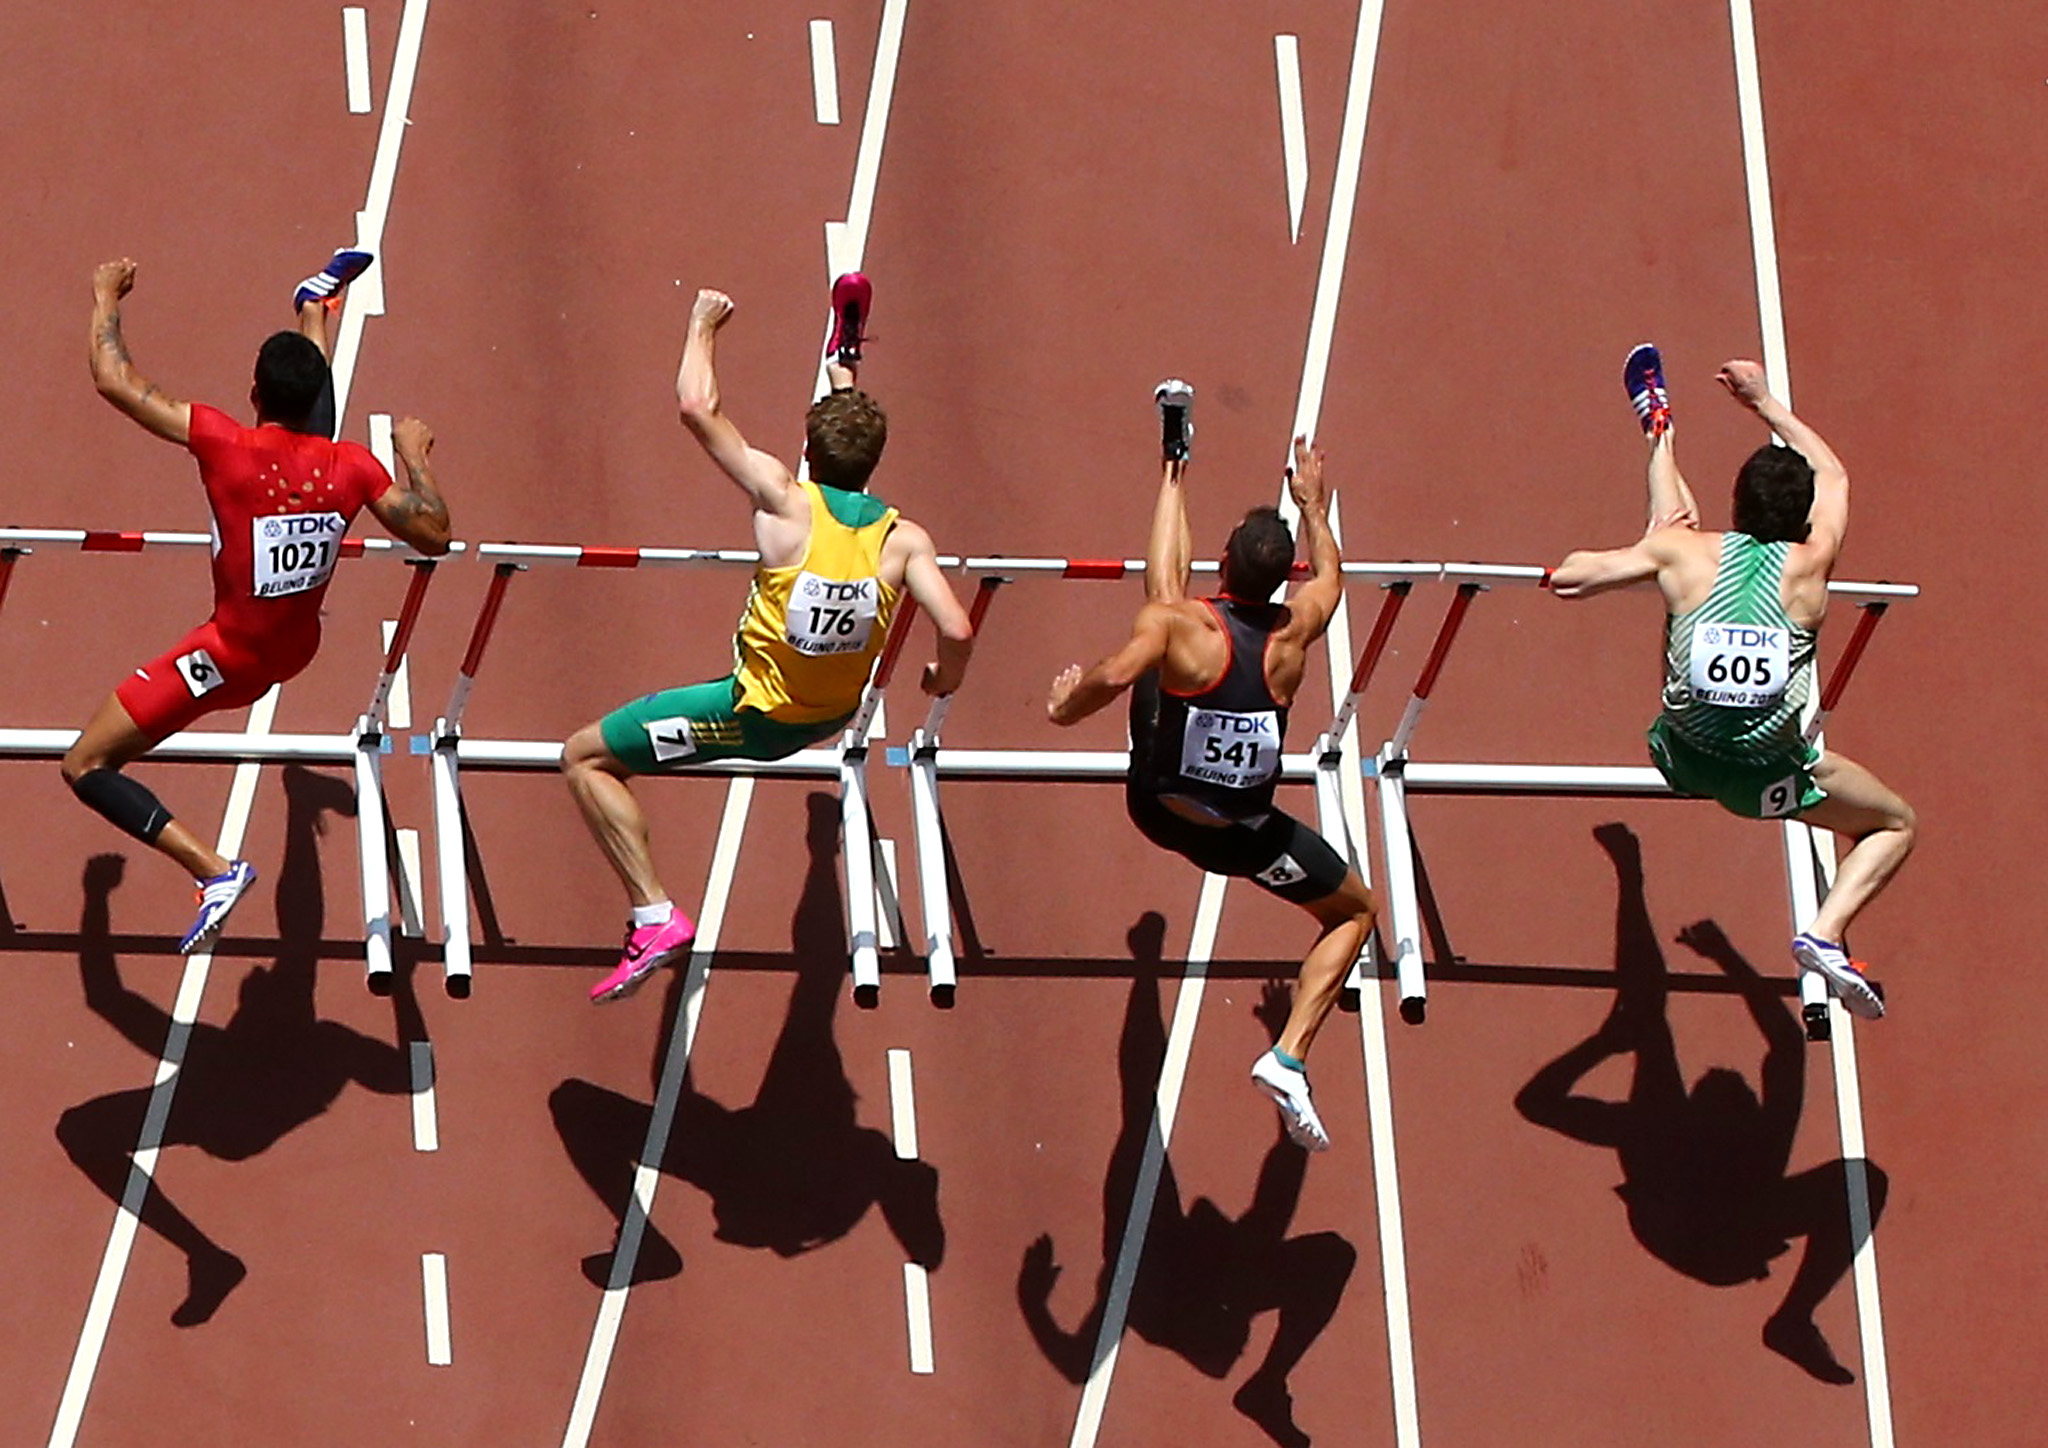 Athletes compete during their men's 110 metres hurdles heat at the IAAF World Championships at the National Stadium in Beijing...(L-R) Aleec Harris of the U.S., Nicholas Hough of Australia, Matthias Buhler of Germany and Ben Reynolds of Ireland compete during their men's 110 metres hurdles heat at the IAAF World Championships at the National Stadium in Beijing, China August 26, 2015. REUTERS/Pawel Kopczynski